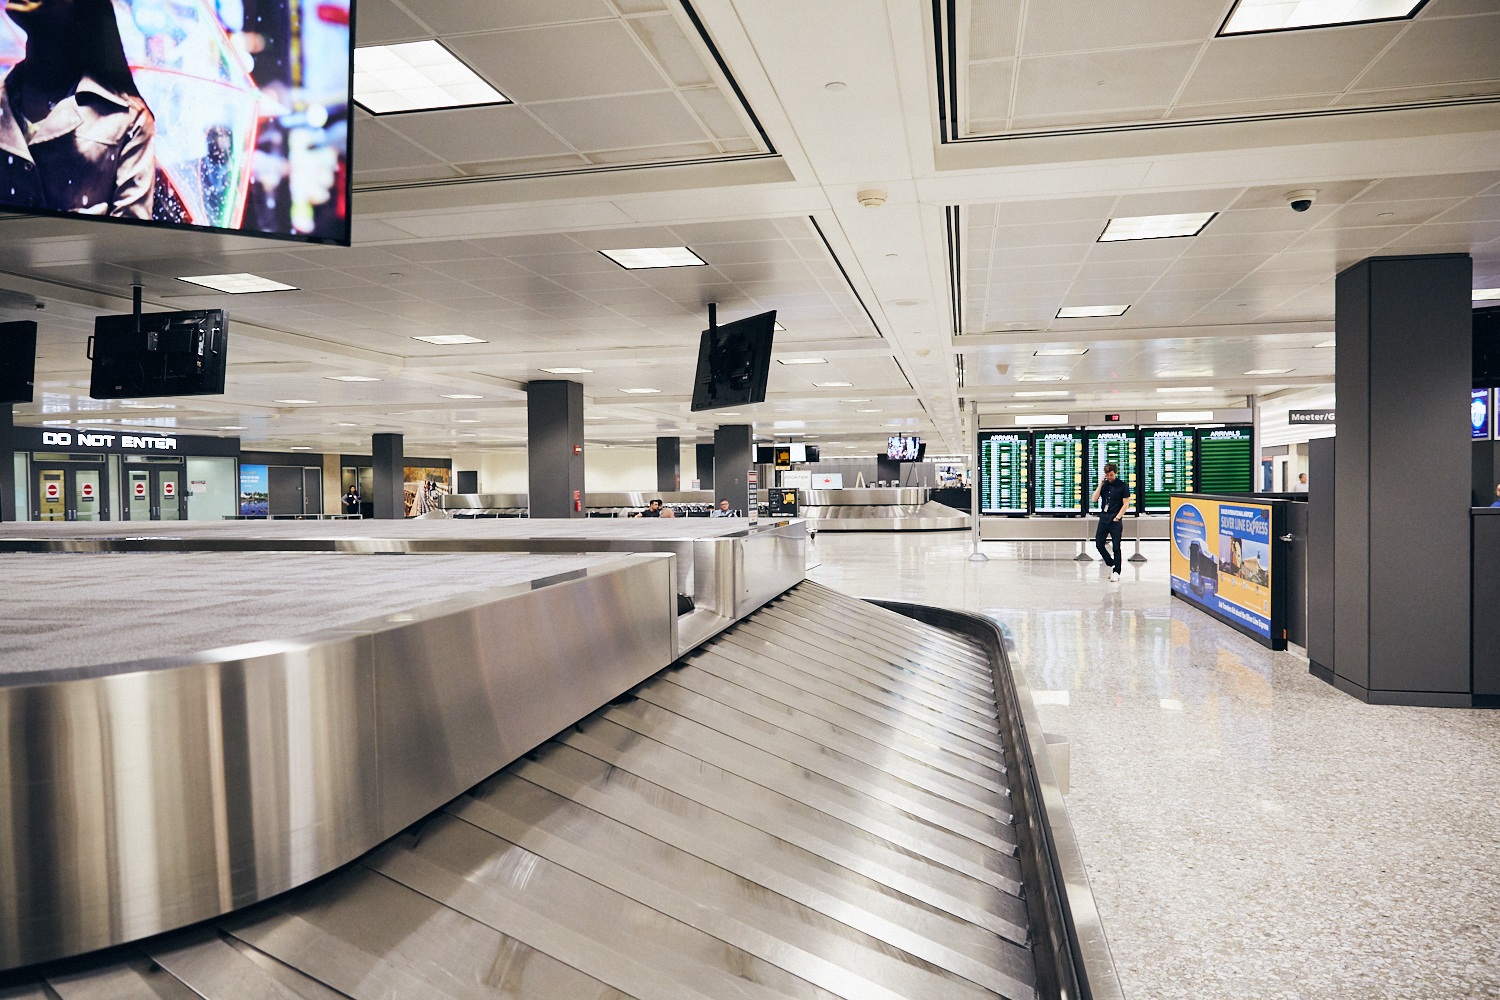 Baggage Claim 6 - United, not use often. Could be a secondary option if baggage claim 10 gets busy.